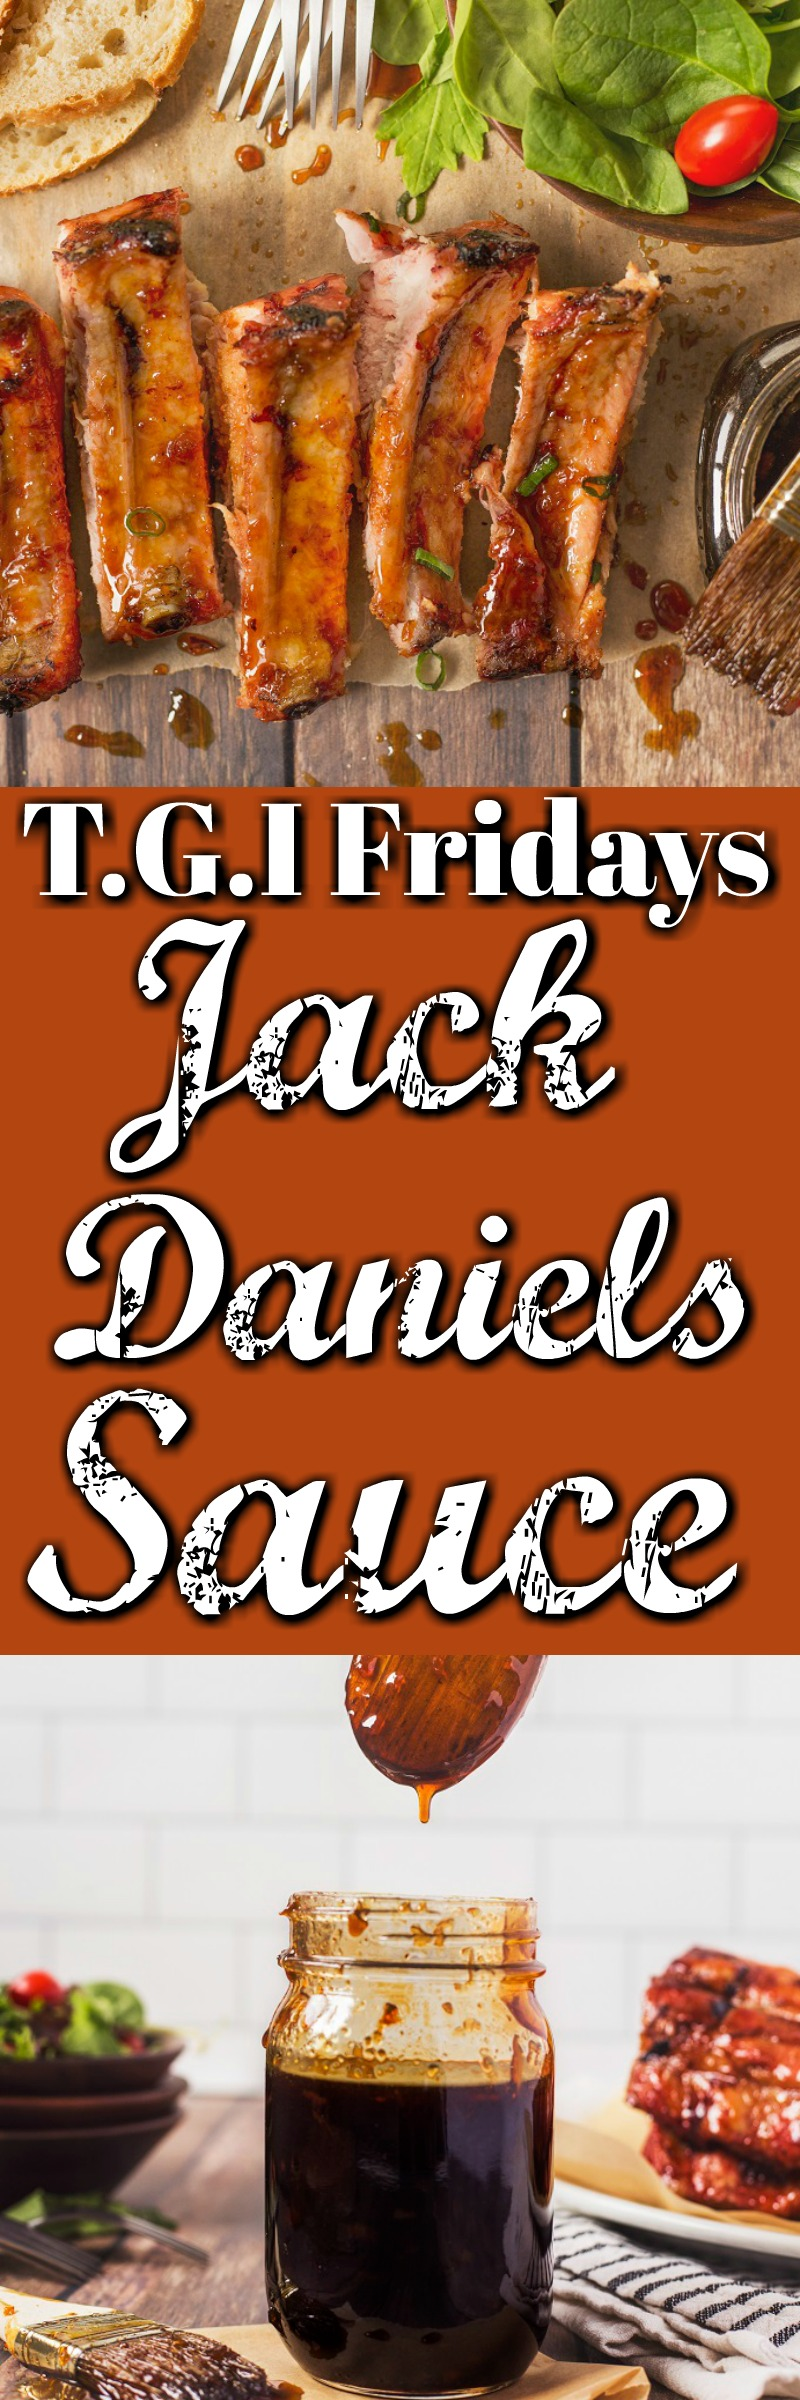 TGI Fridays Jack Daniels Sauce is perfect for ribs, chicken, burgers or just straight from the jar! #TGIF #JackDanielssauce #JDSauce #jackdaniels